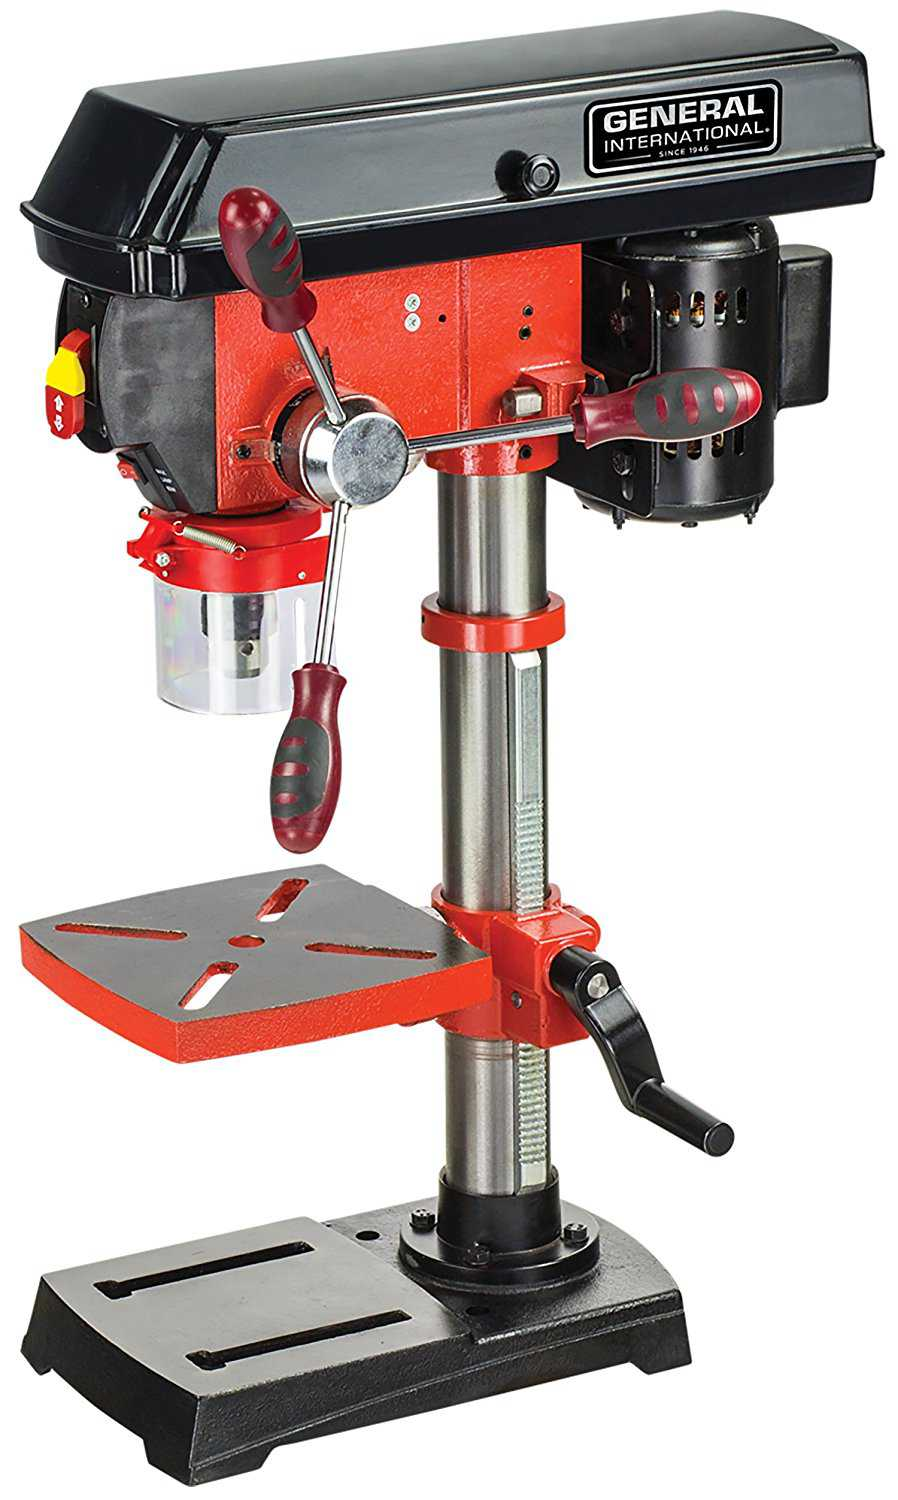 General International Power Products DP2002 10' 5 Speed Drill Press